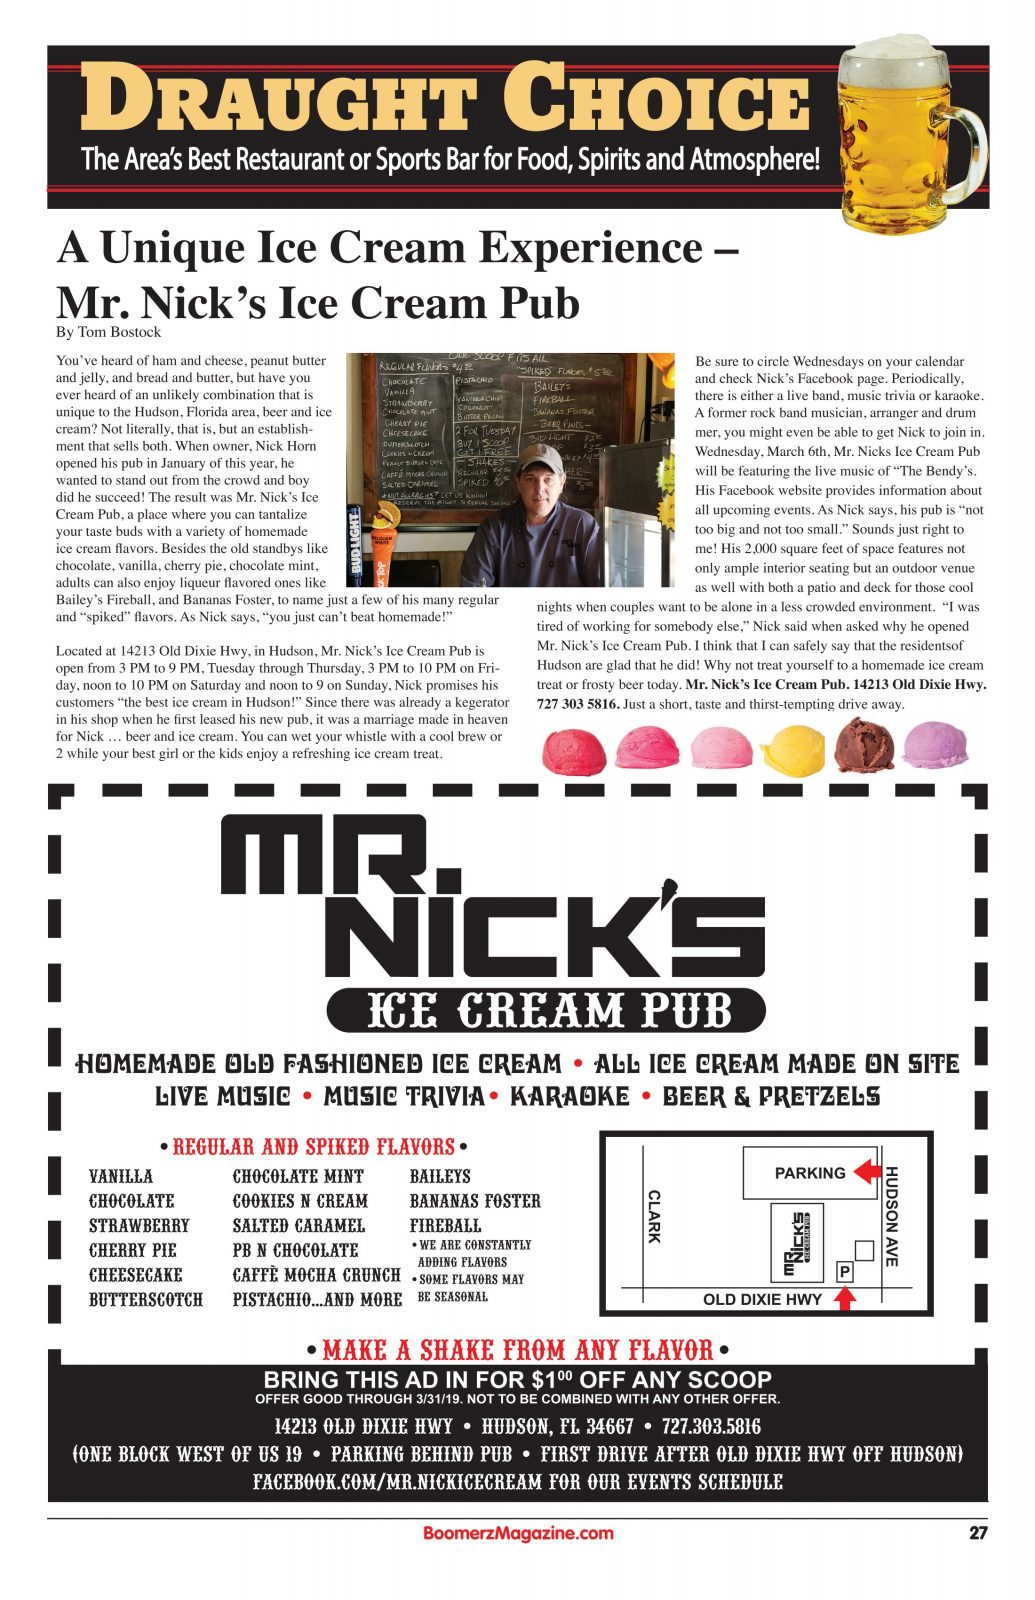 Mr Nicks Ice Cream Pub